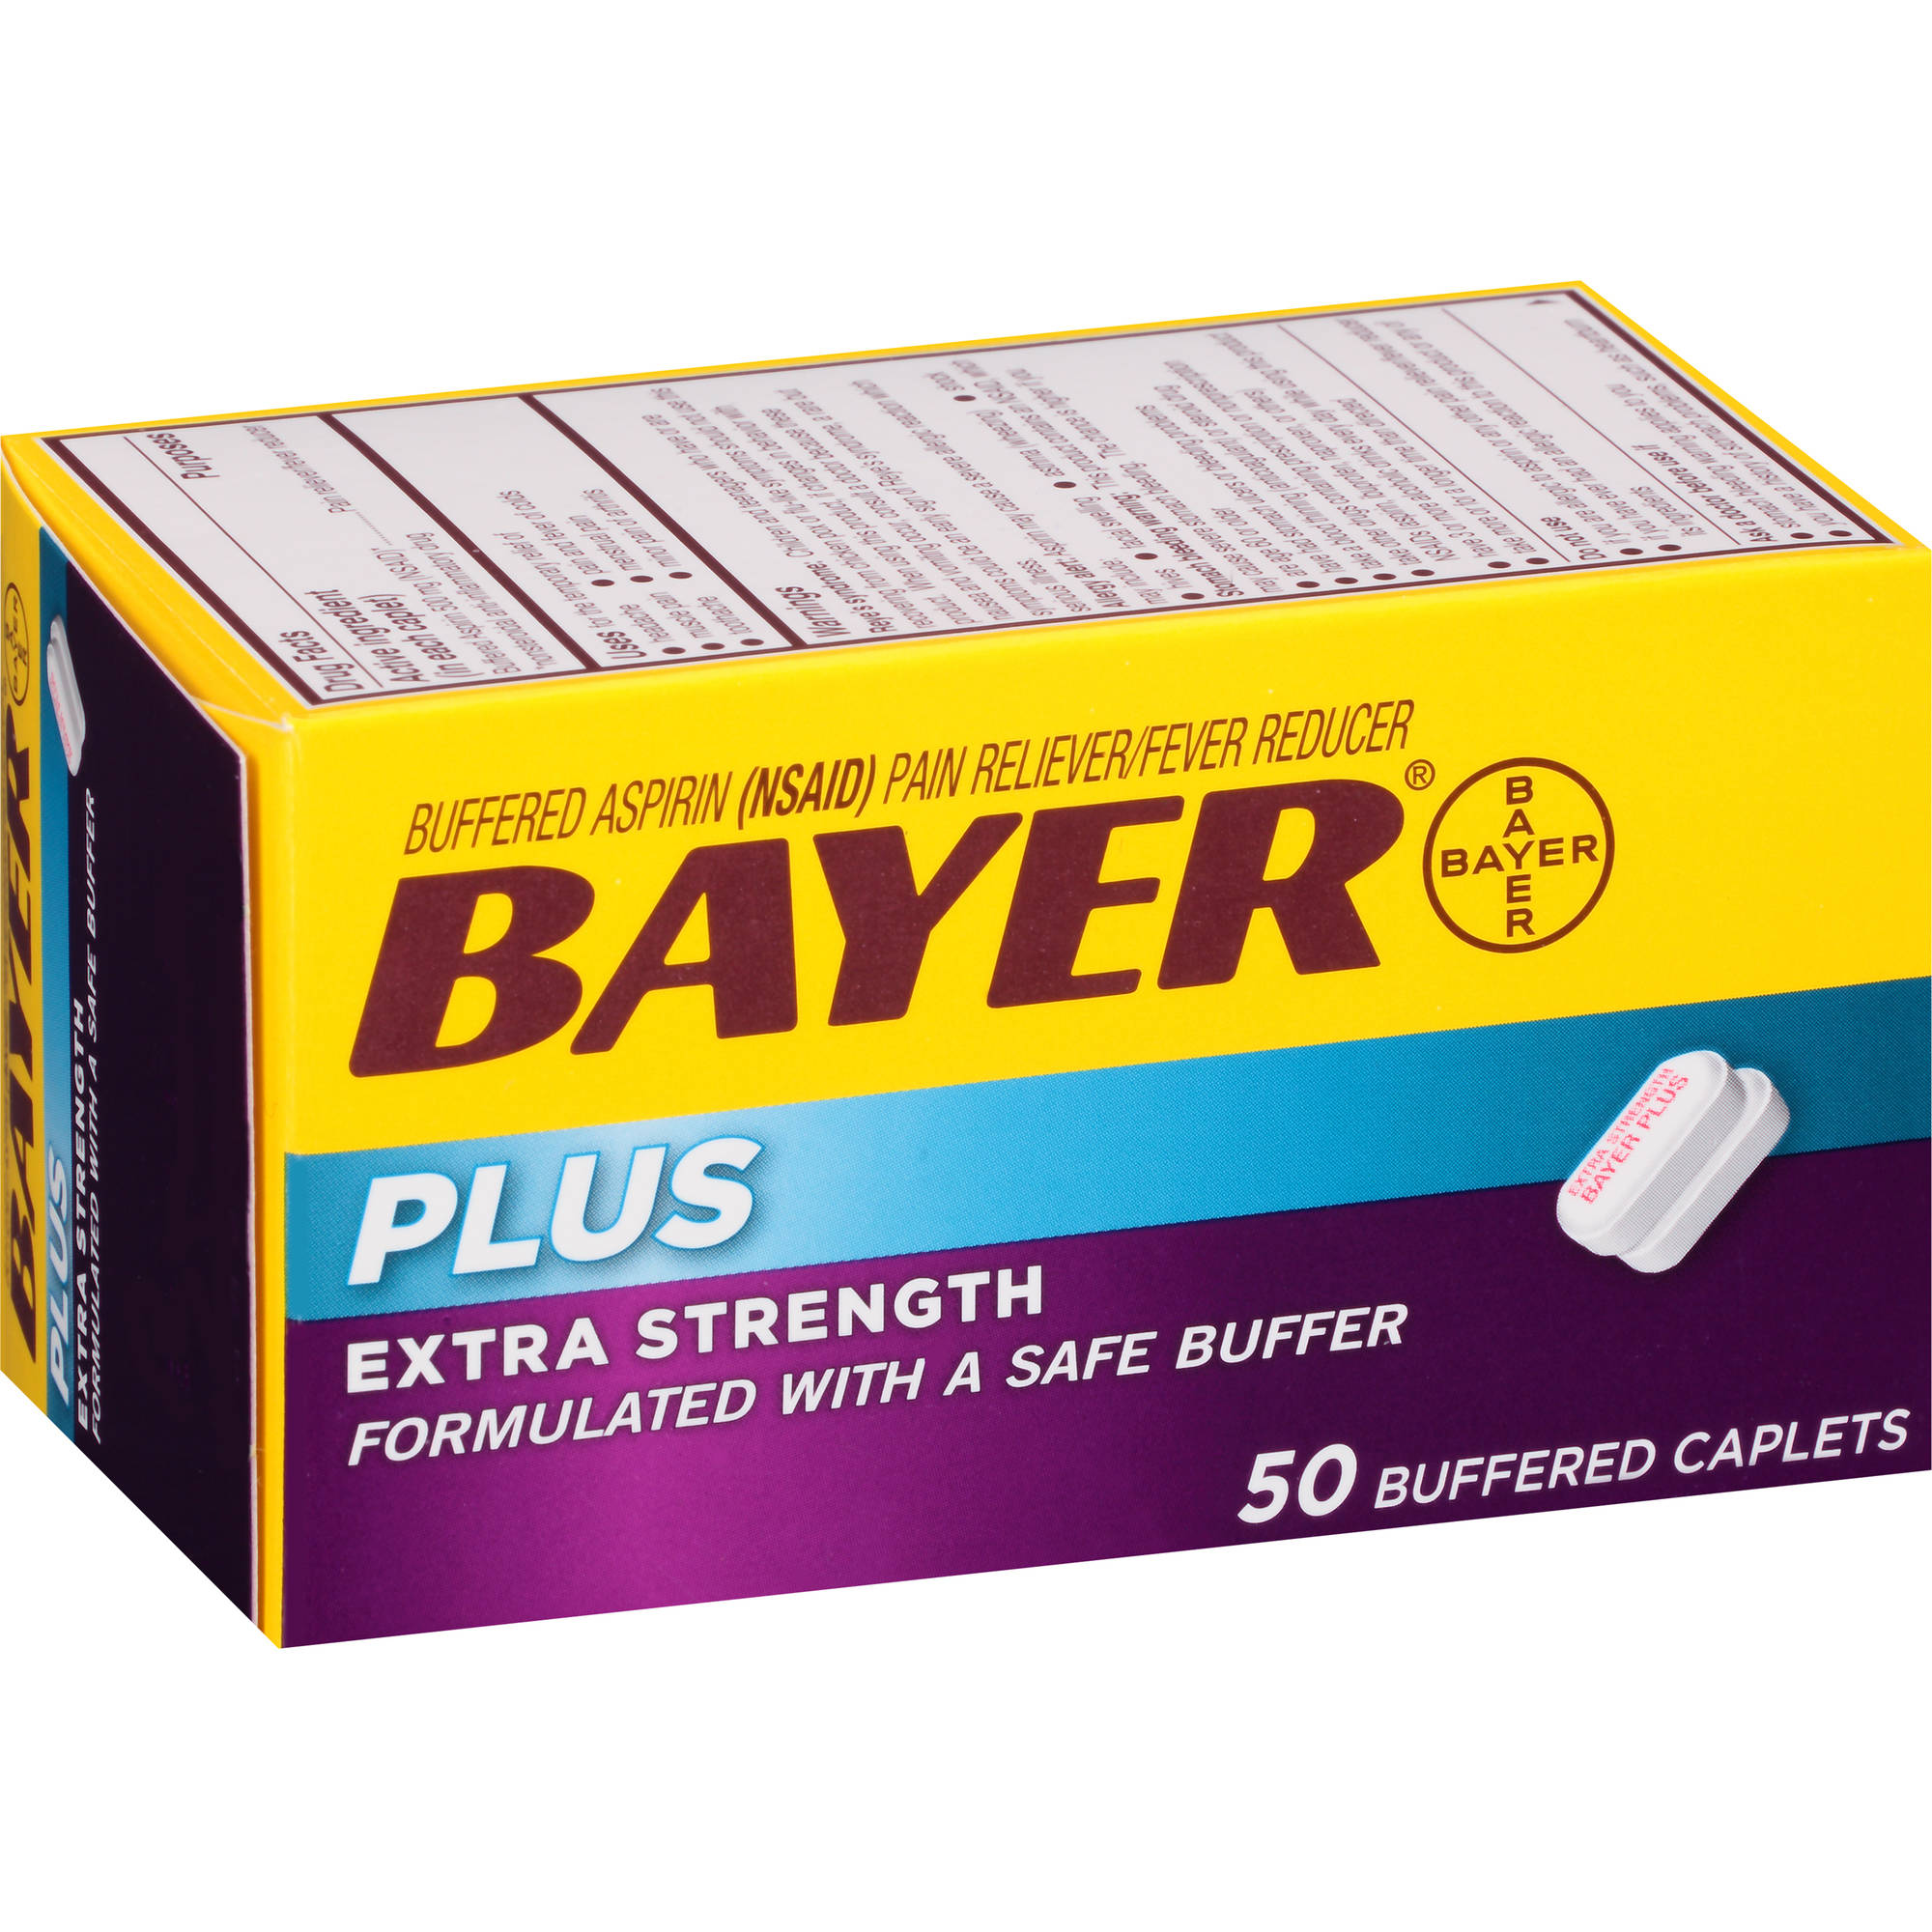 Bayer Plus Extra Strength Aspirin Pain Reliever/Fever Reducer Buffered Caplets, 50 count